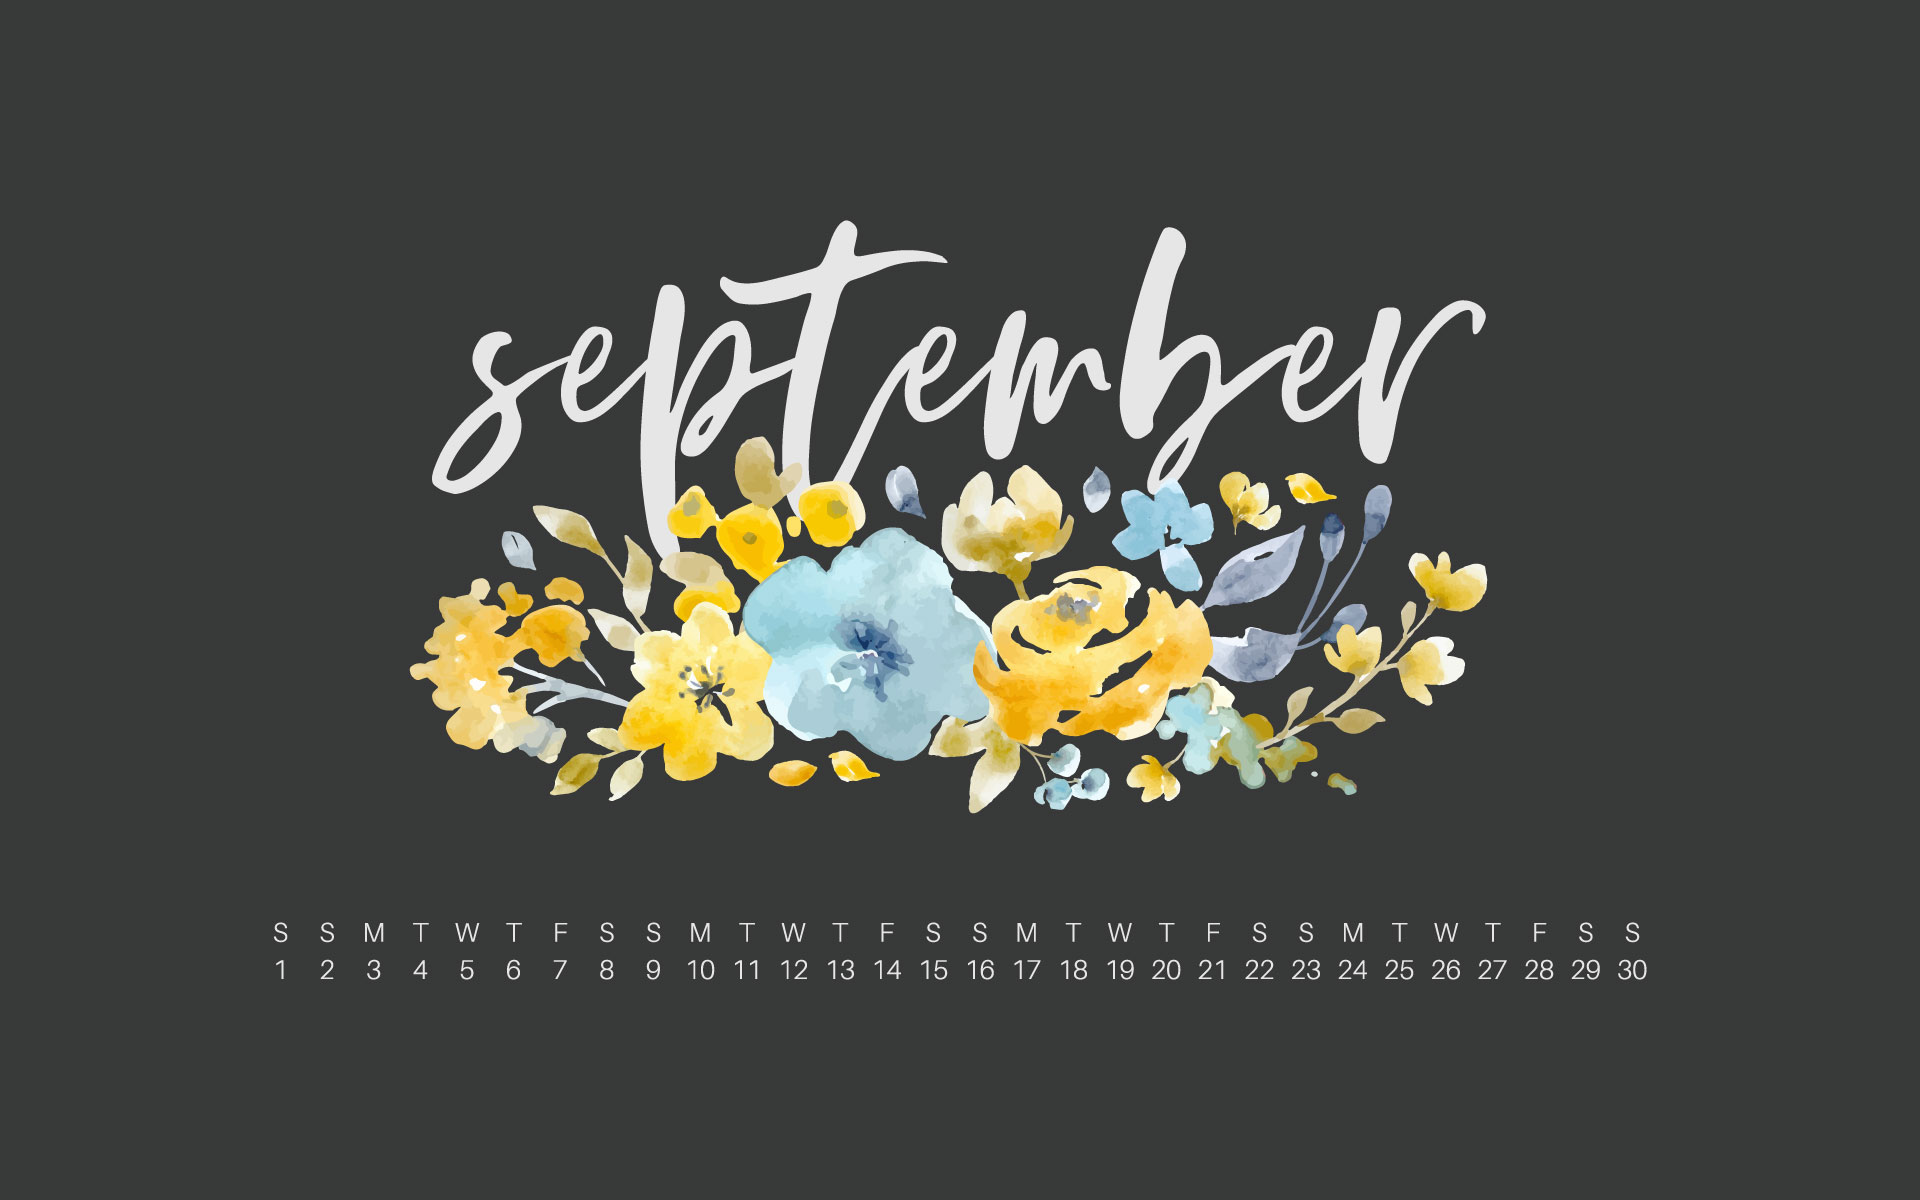 Uppercase Designs September 2018 Wallpaper